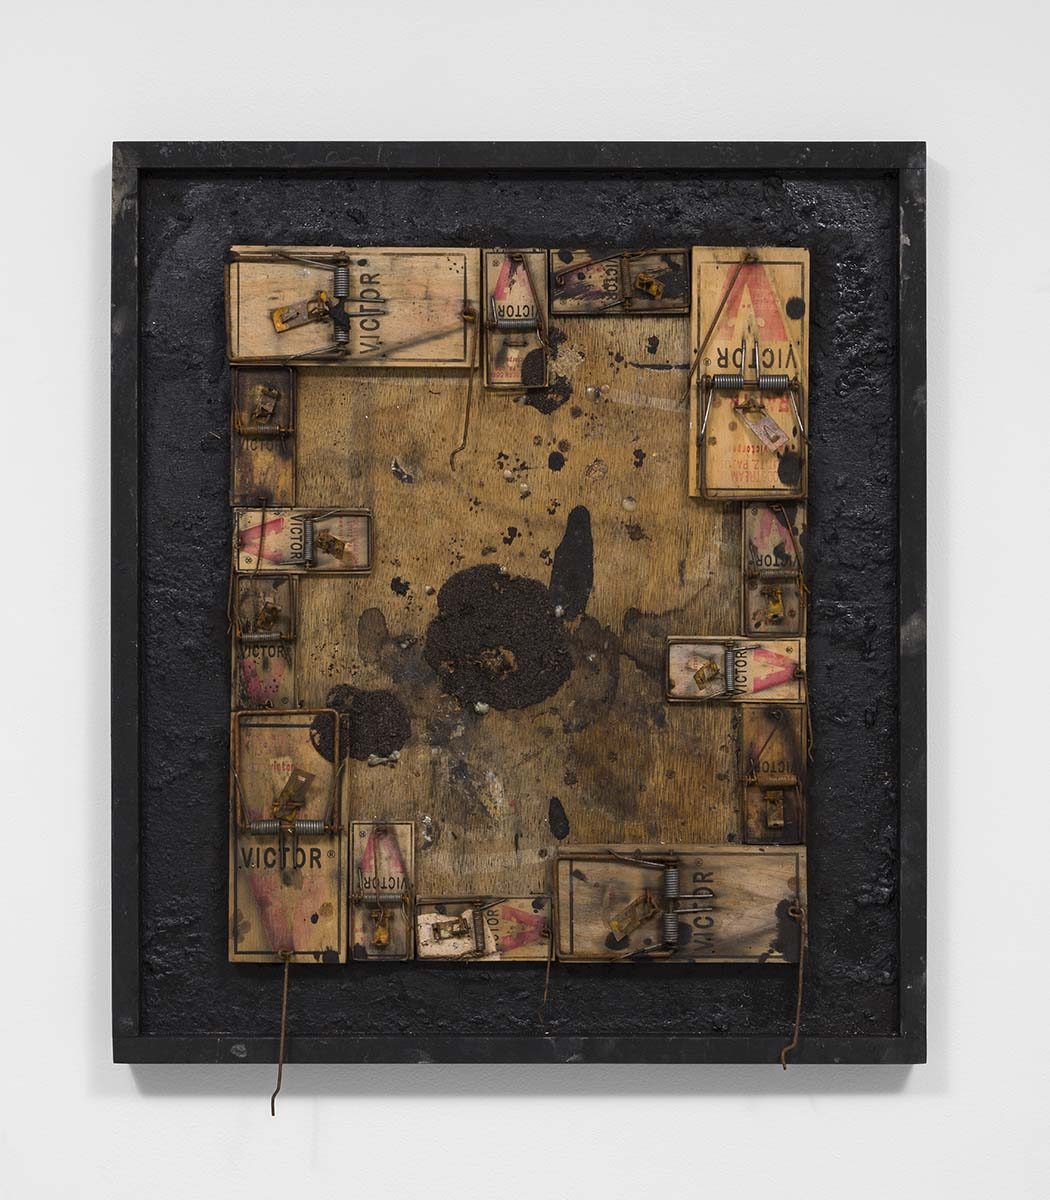 Richard Hawkins - Plague Trap, 2015,  traps, foodstuff, rat droppings and tar in artist's frame, 25 ¾ x 22 ¾ x 2 ¾ inches